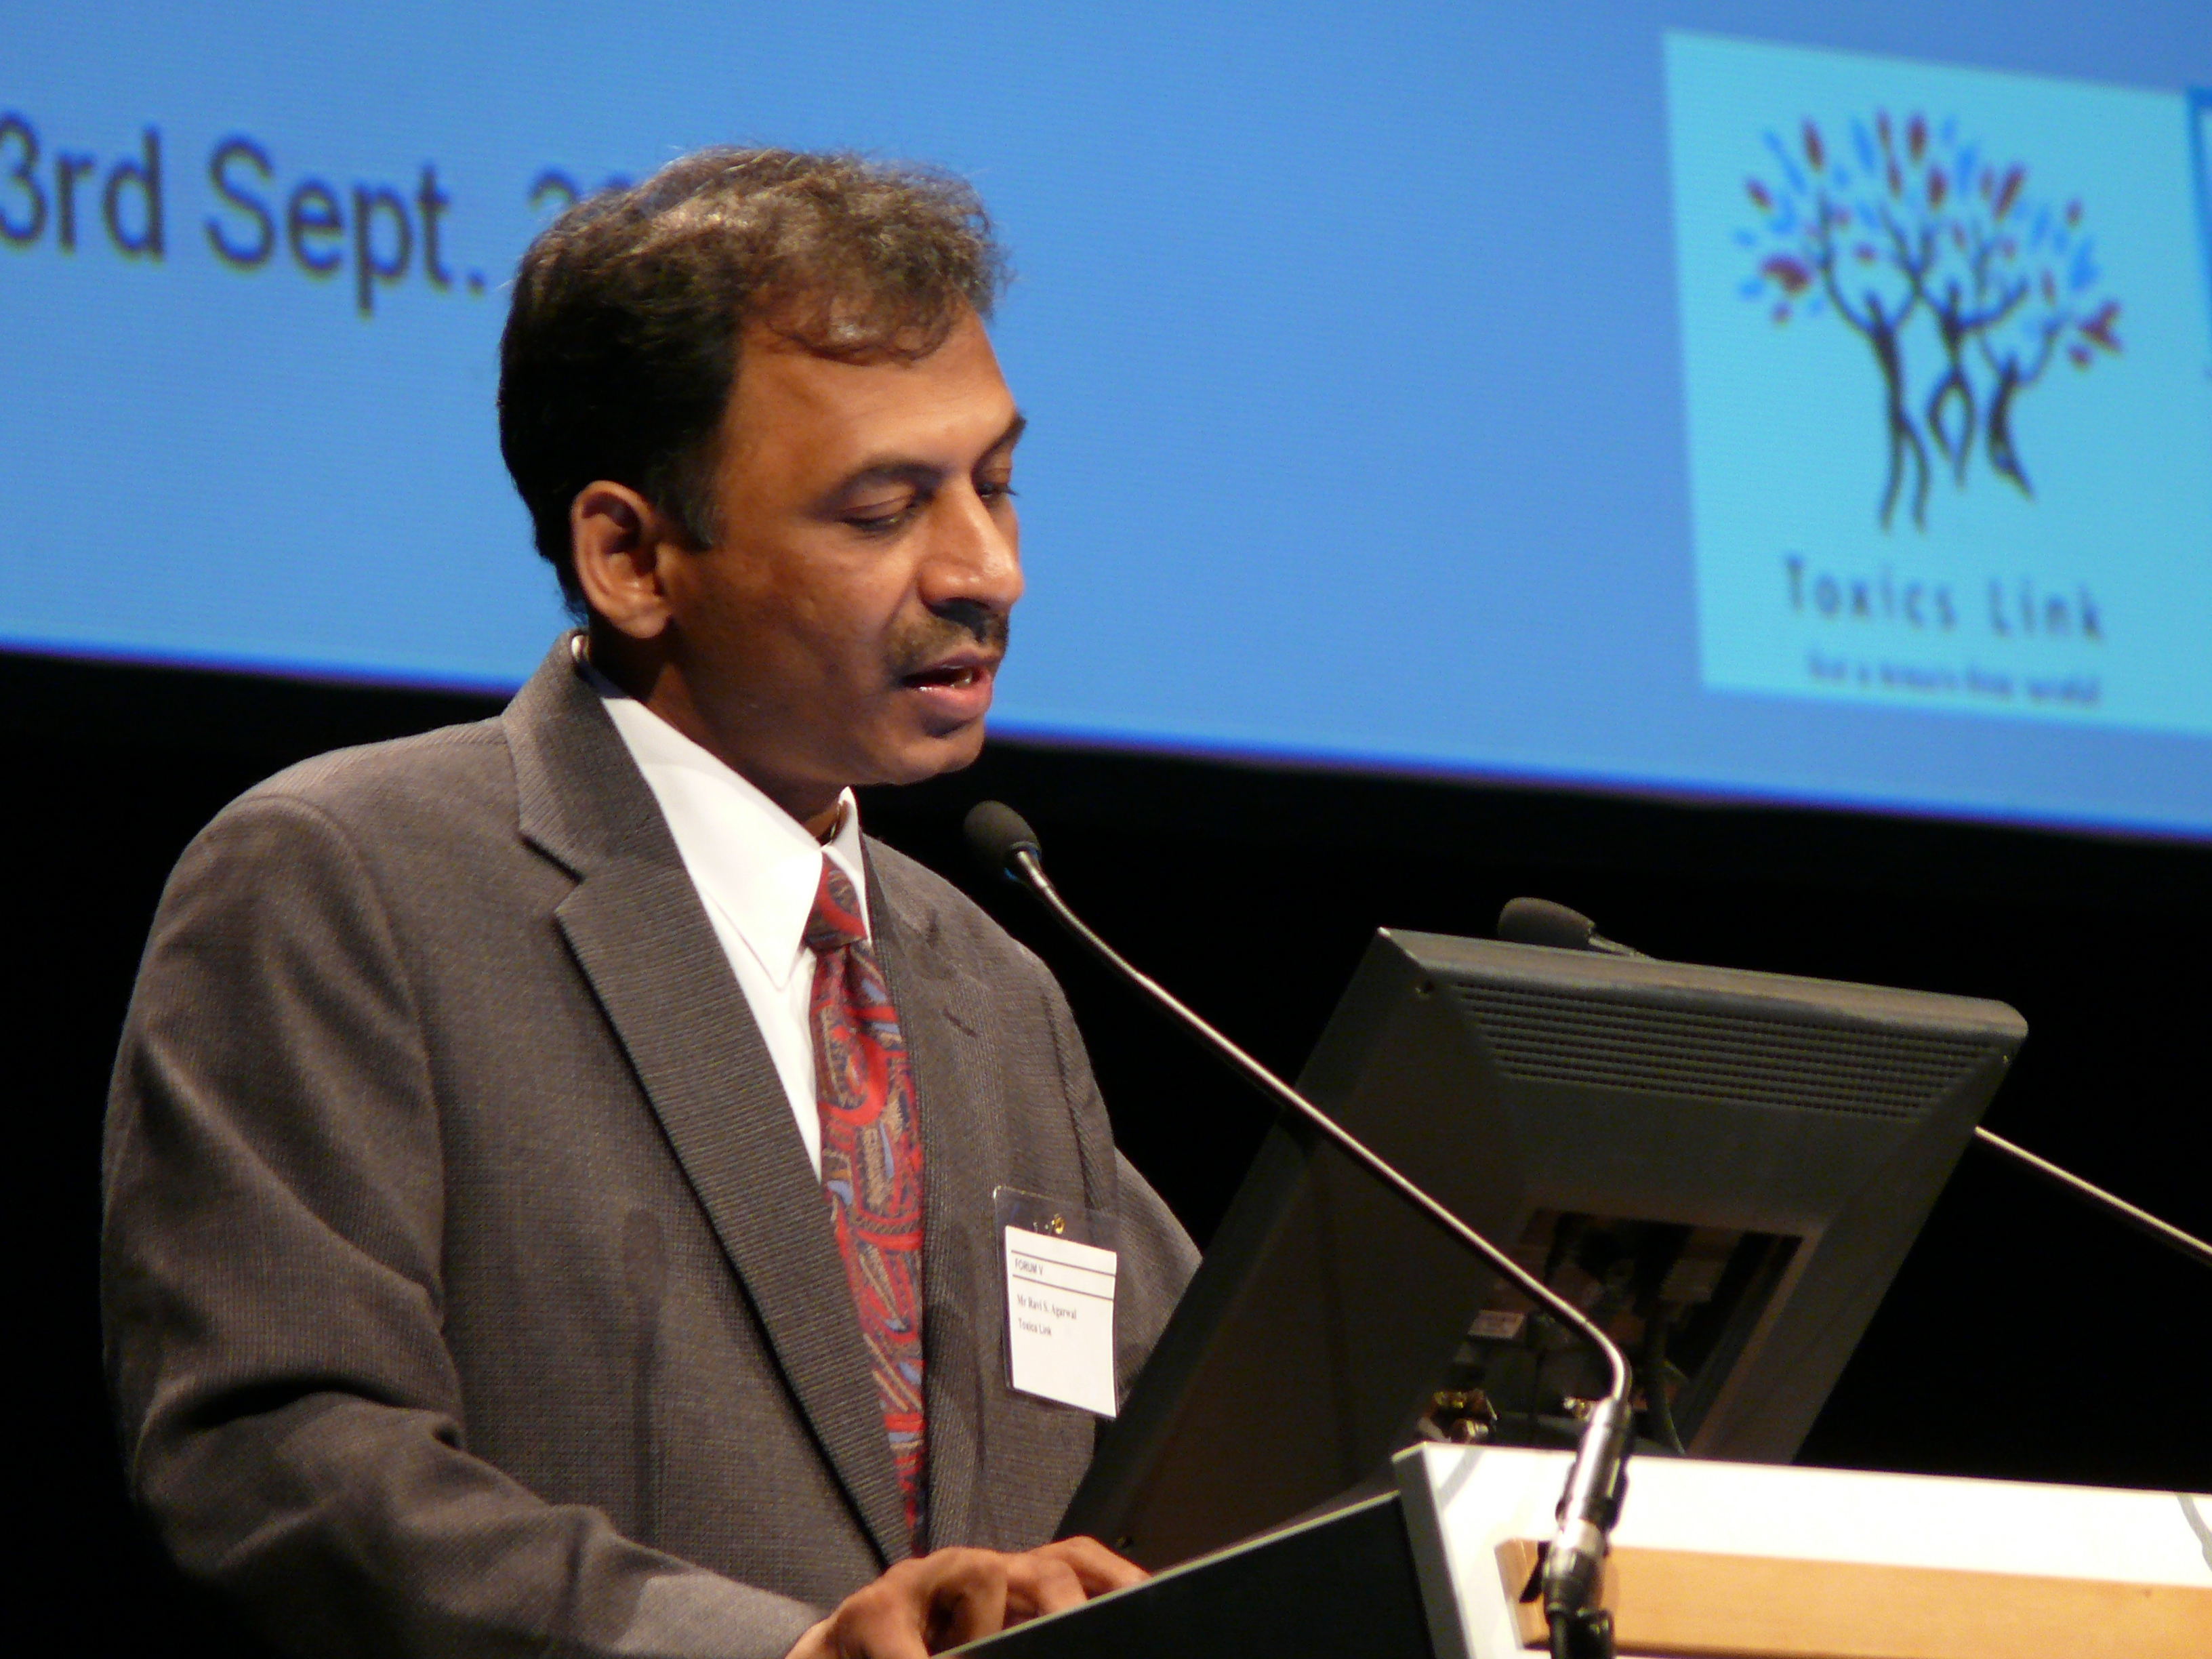 Ravi Agarwal making presentation at IFCS, Hungary 2006